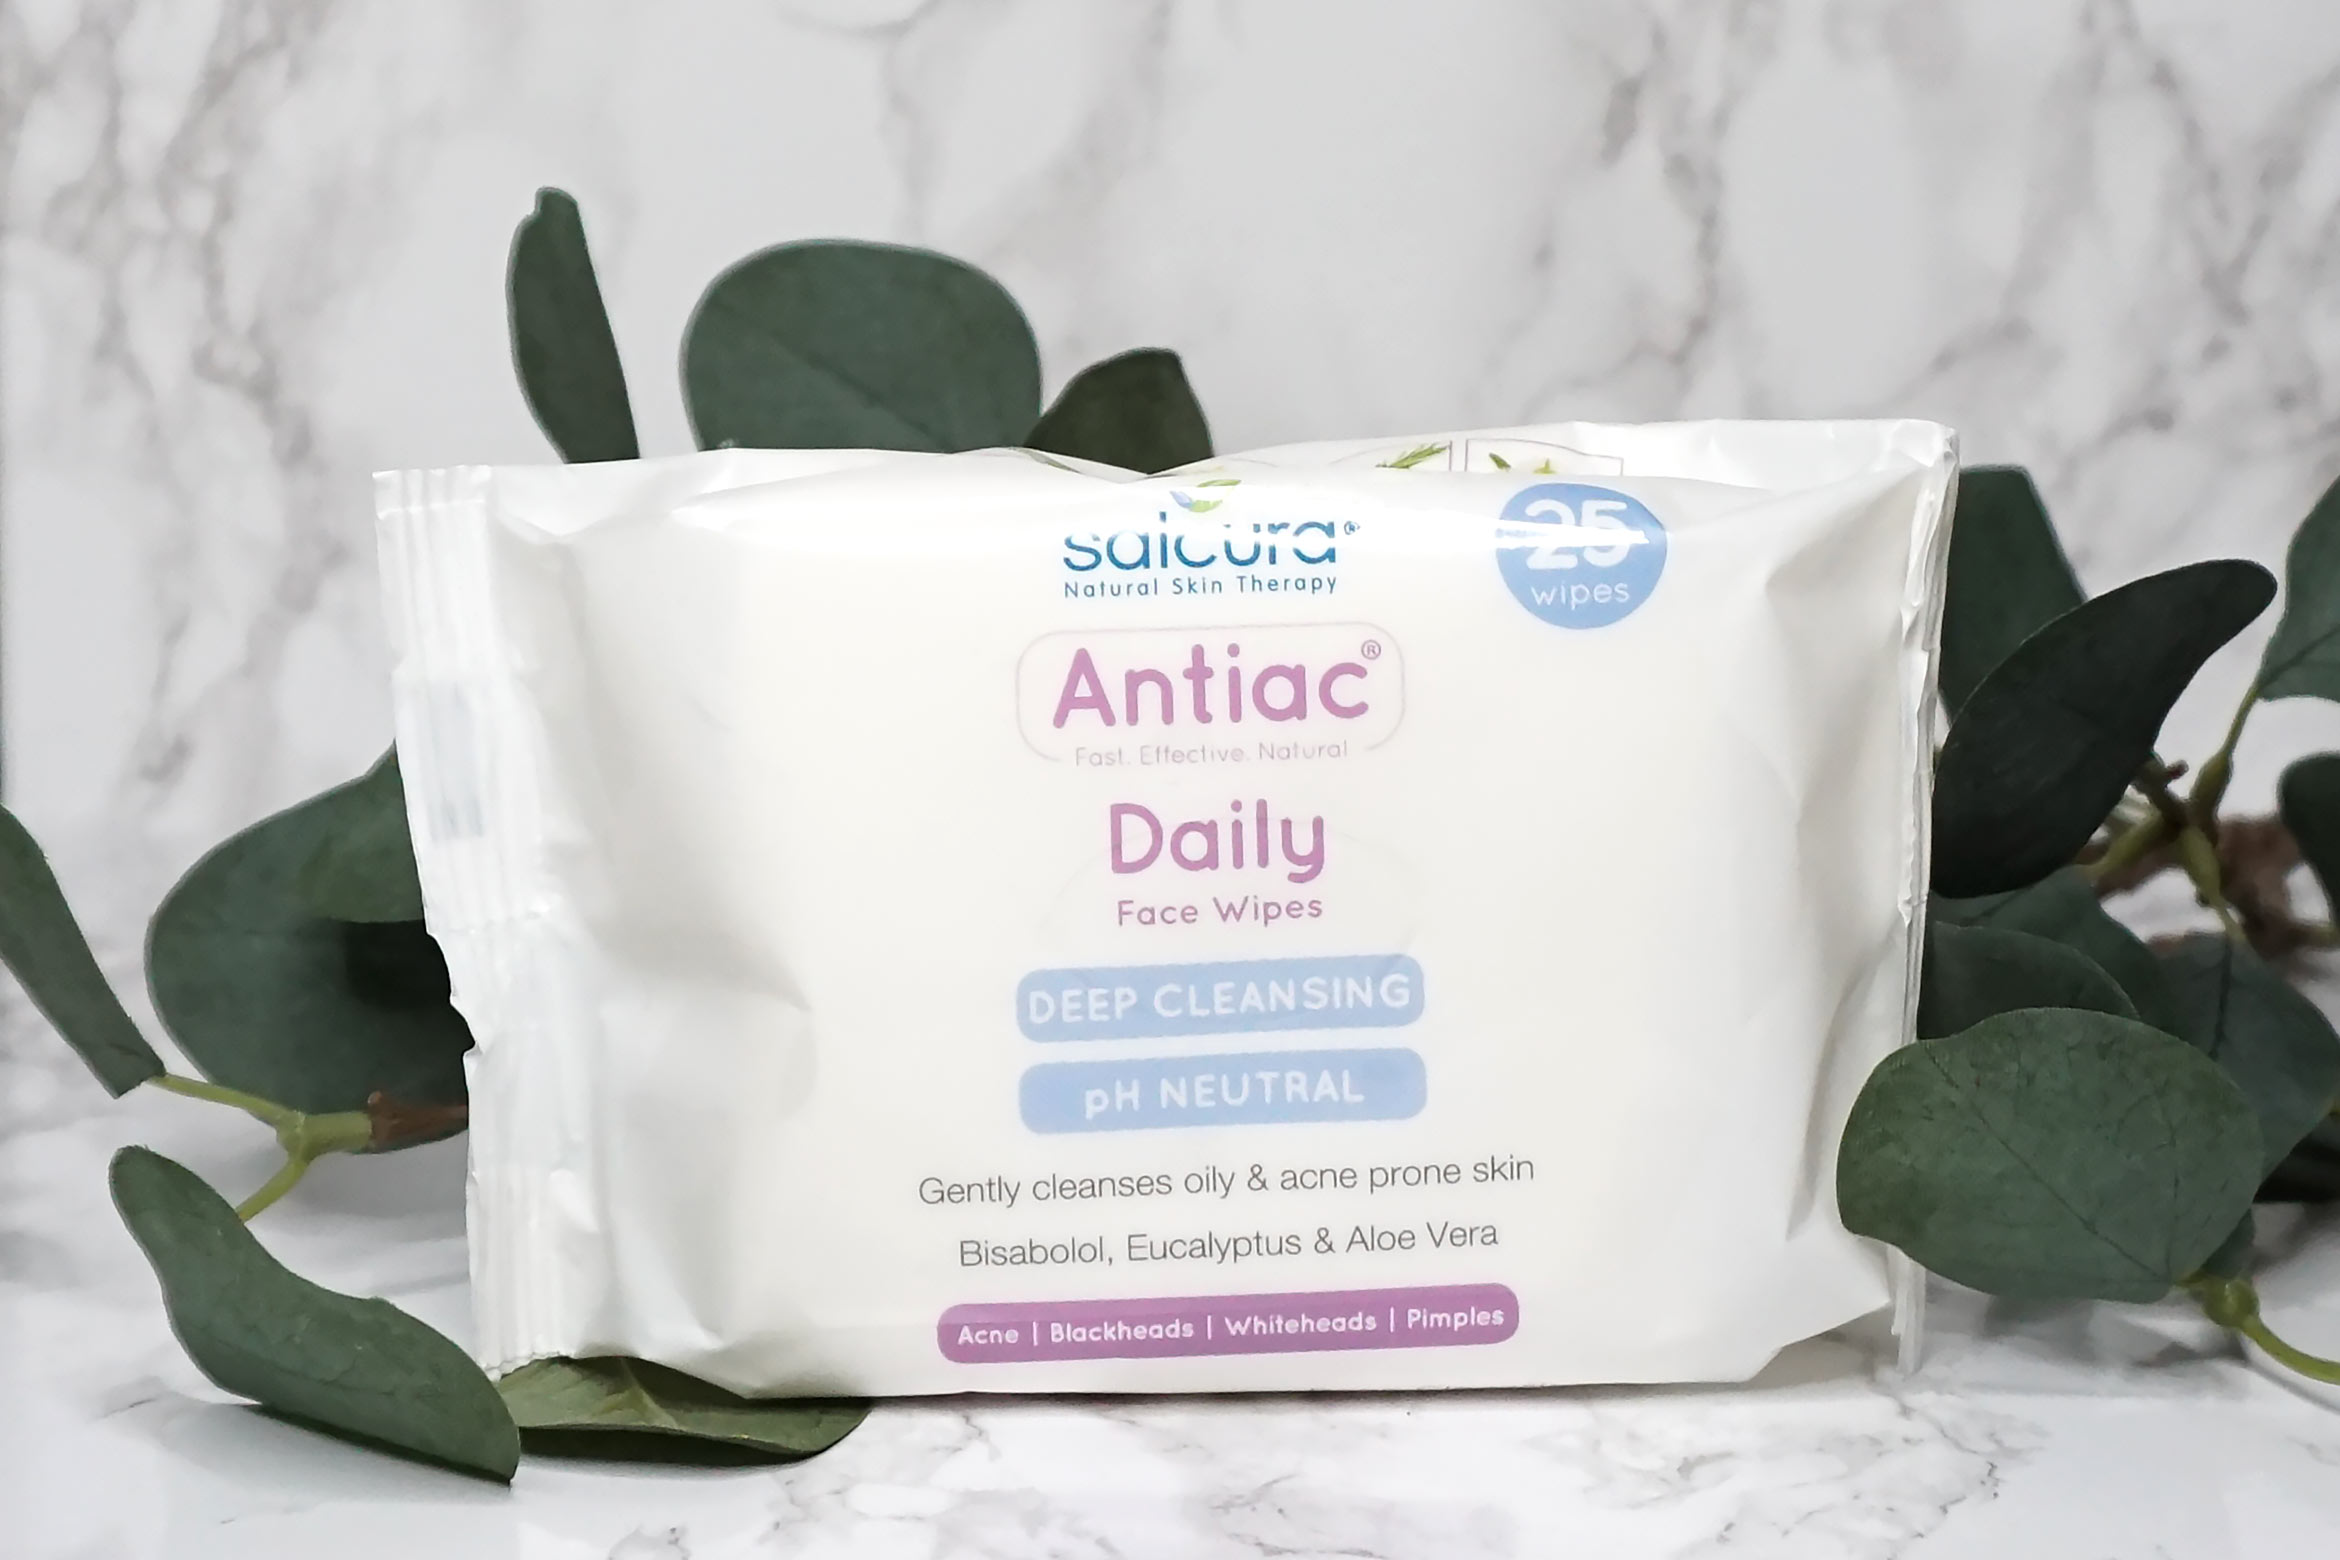 salcura-antiac-daily-face-wipes-review